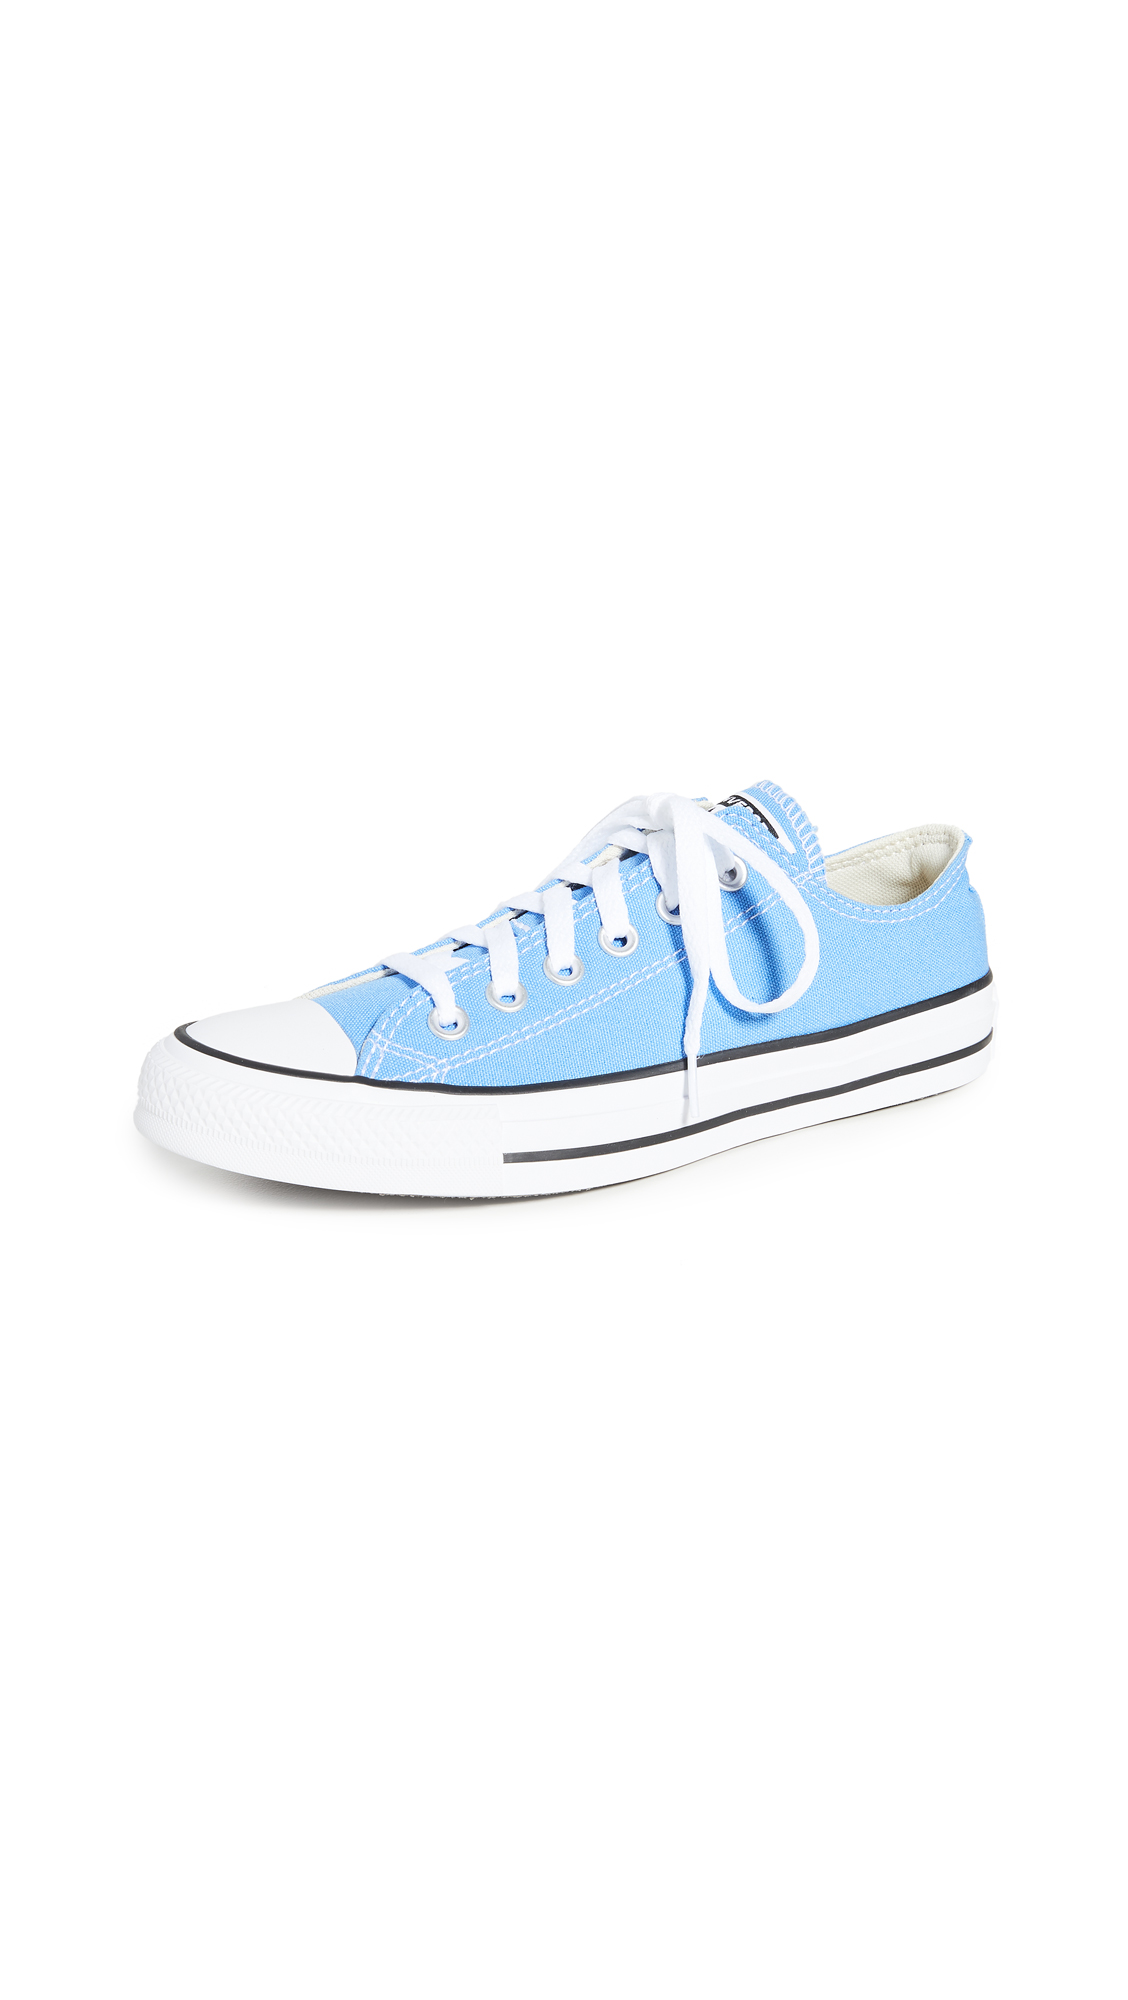 Converse Chuck Taylor All Star Seasonal Ox Sneakers - 40% Off Sale